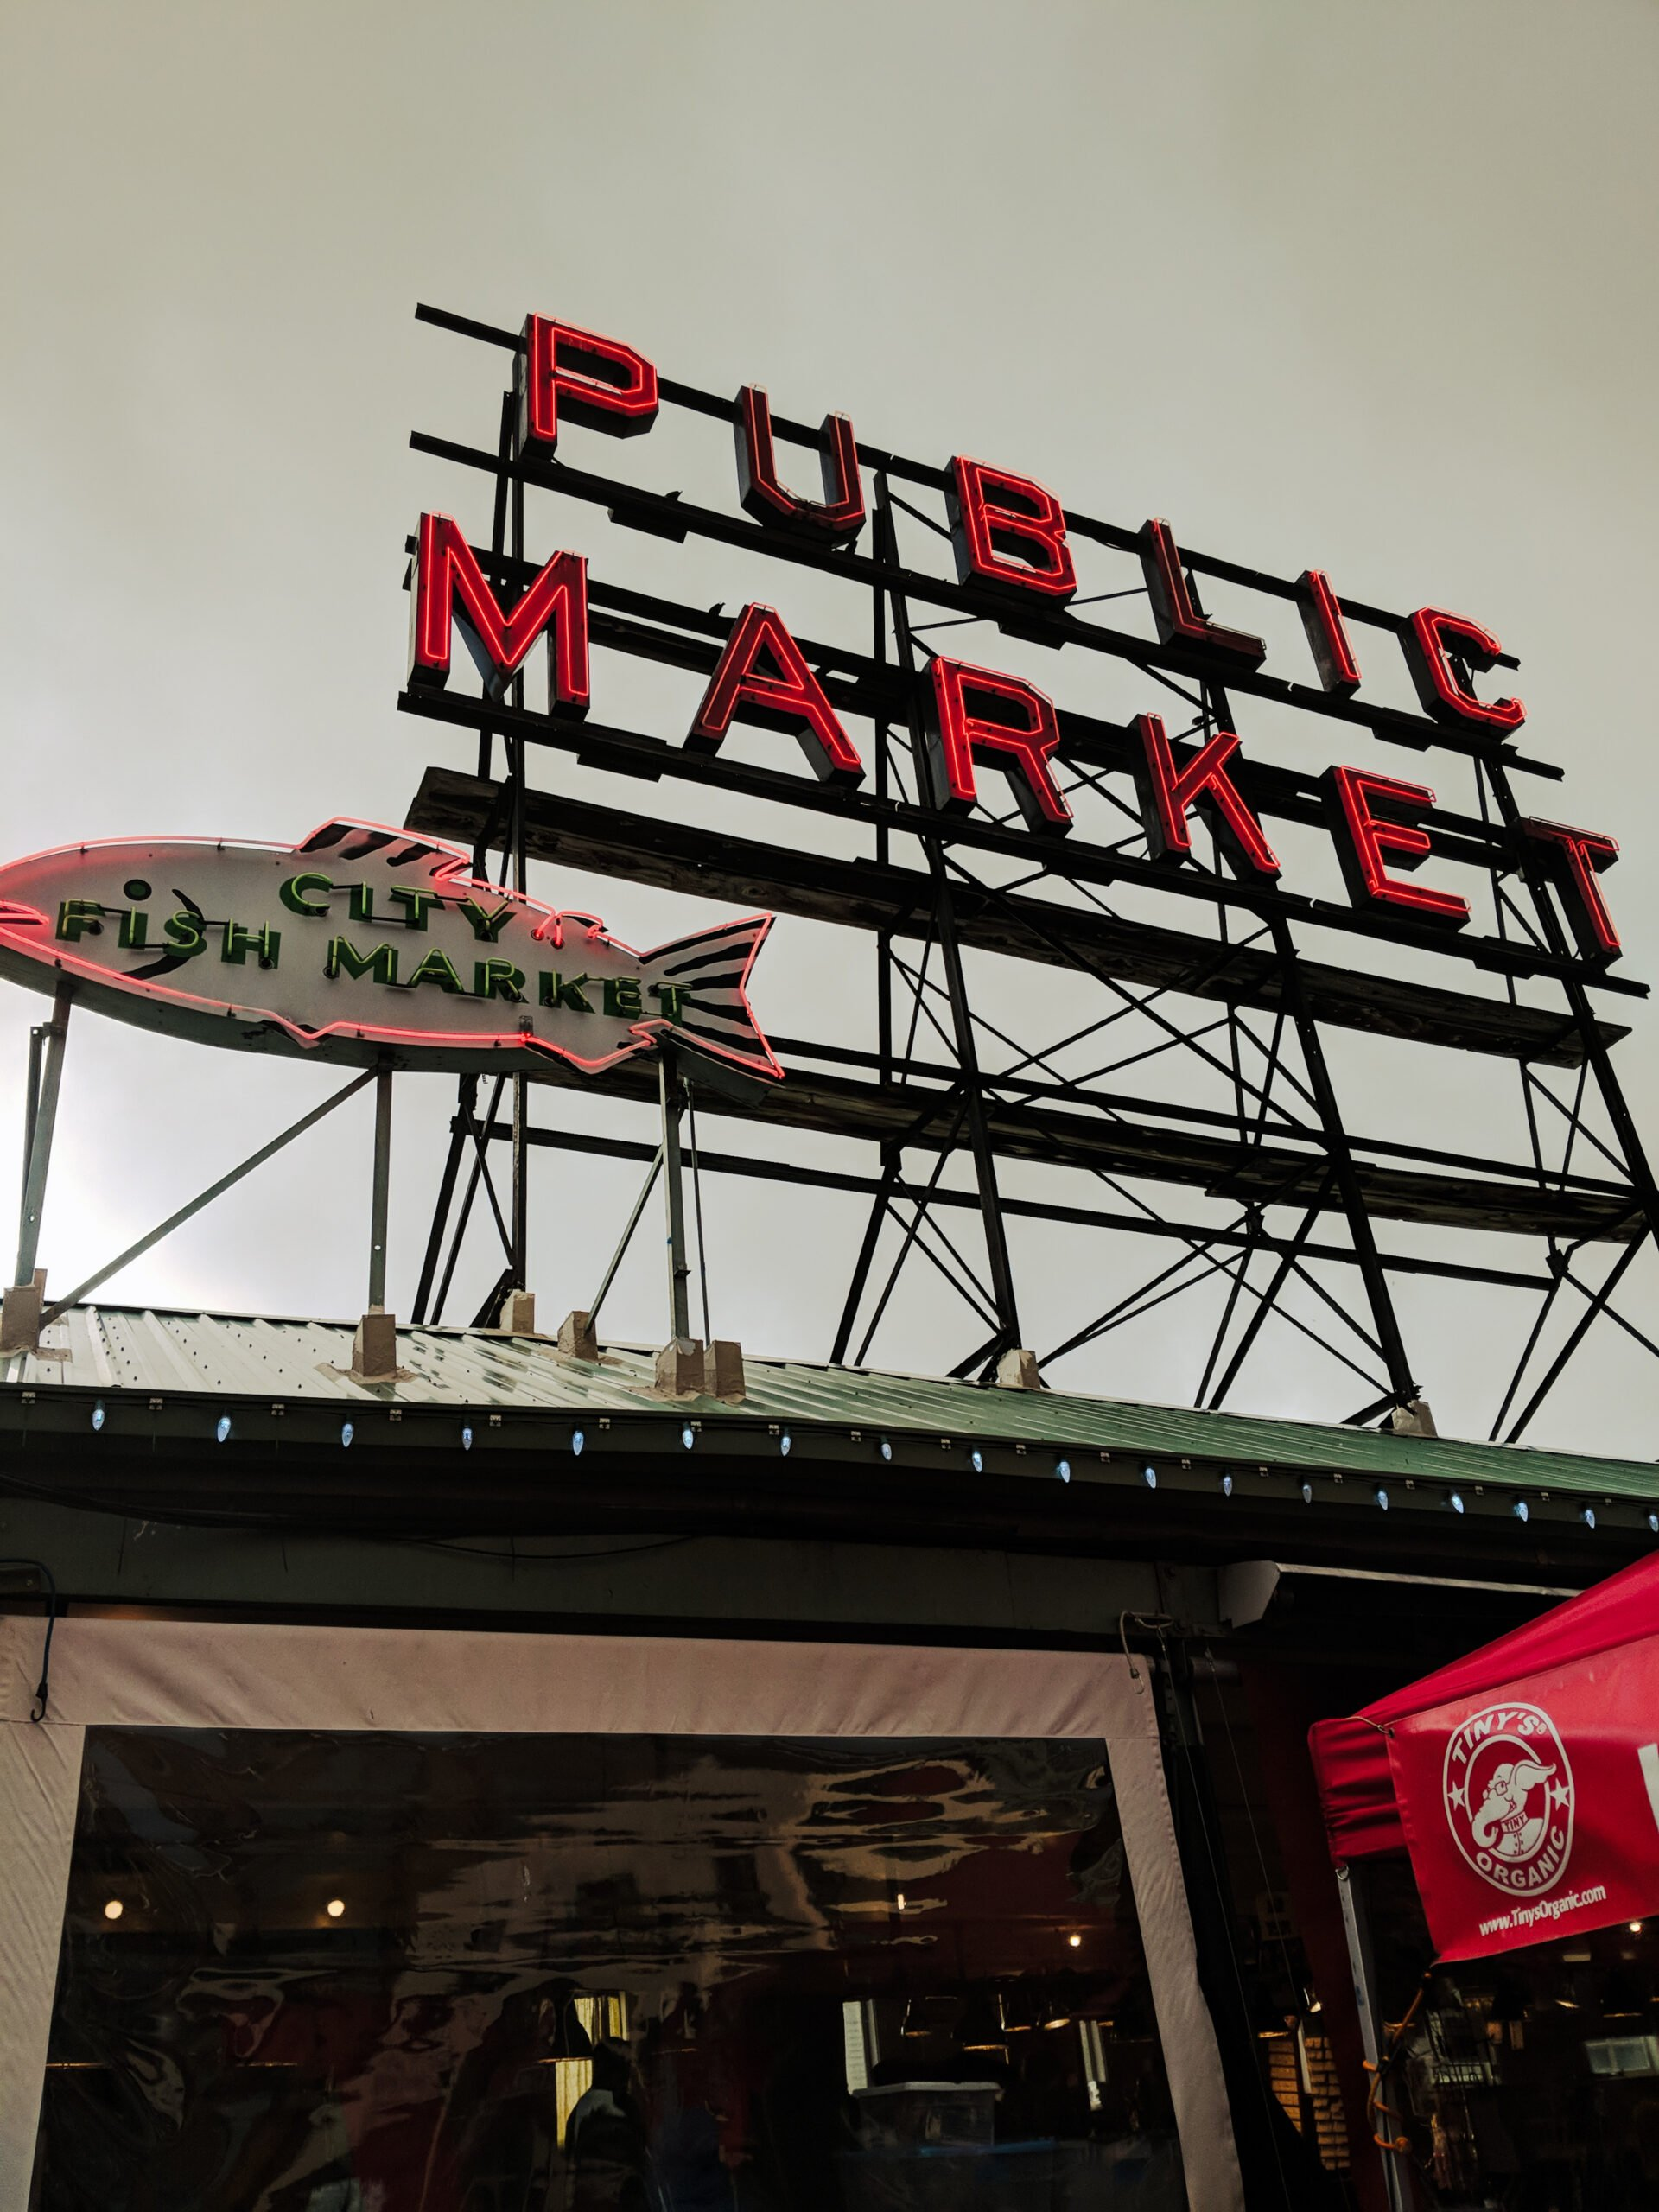 A neon sign at pike place market on an overcast winter day.